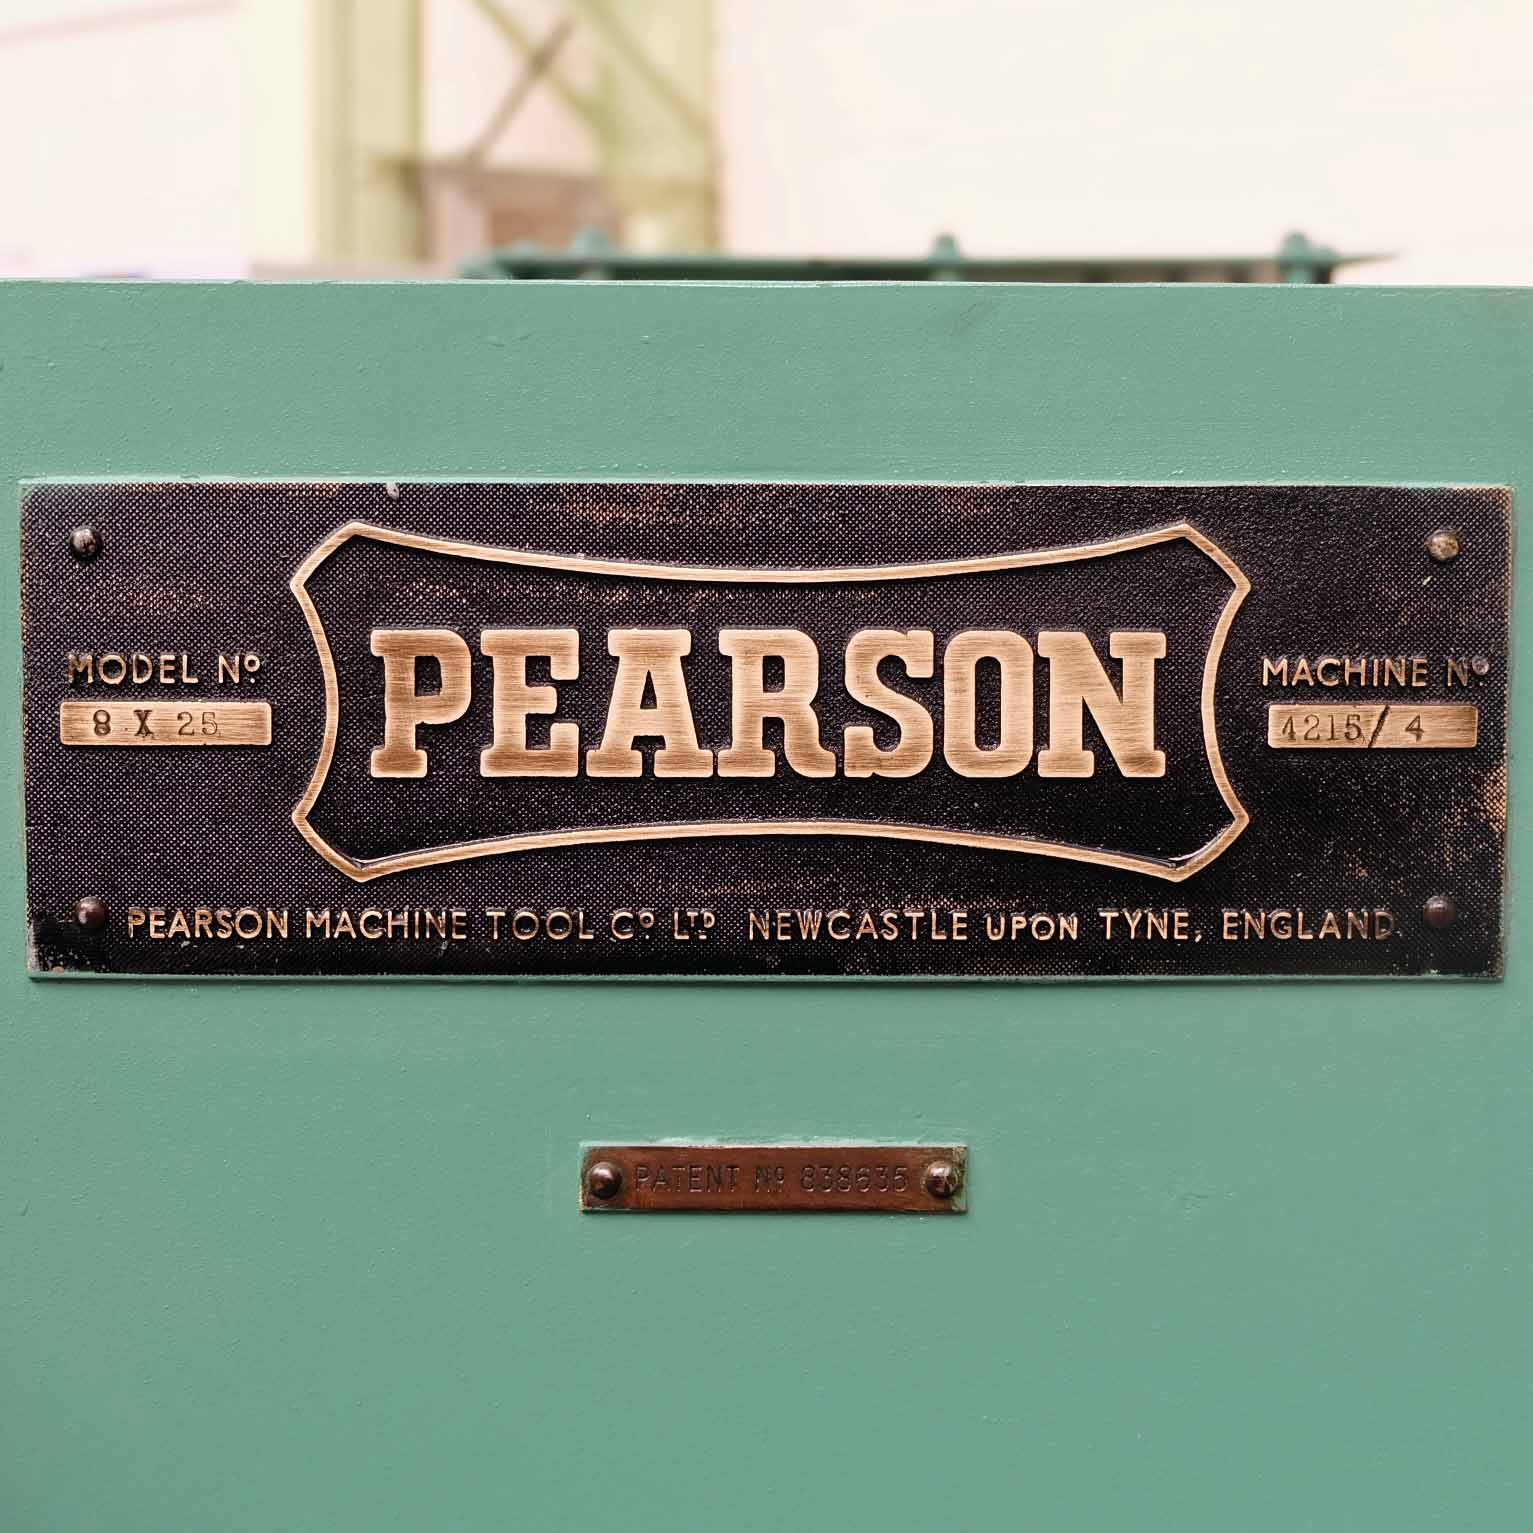 Pearson Type 8 x 25 Hydraulic Guillotine. - Image 7 of 7